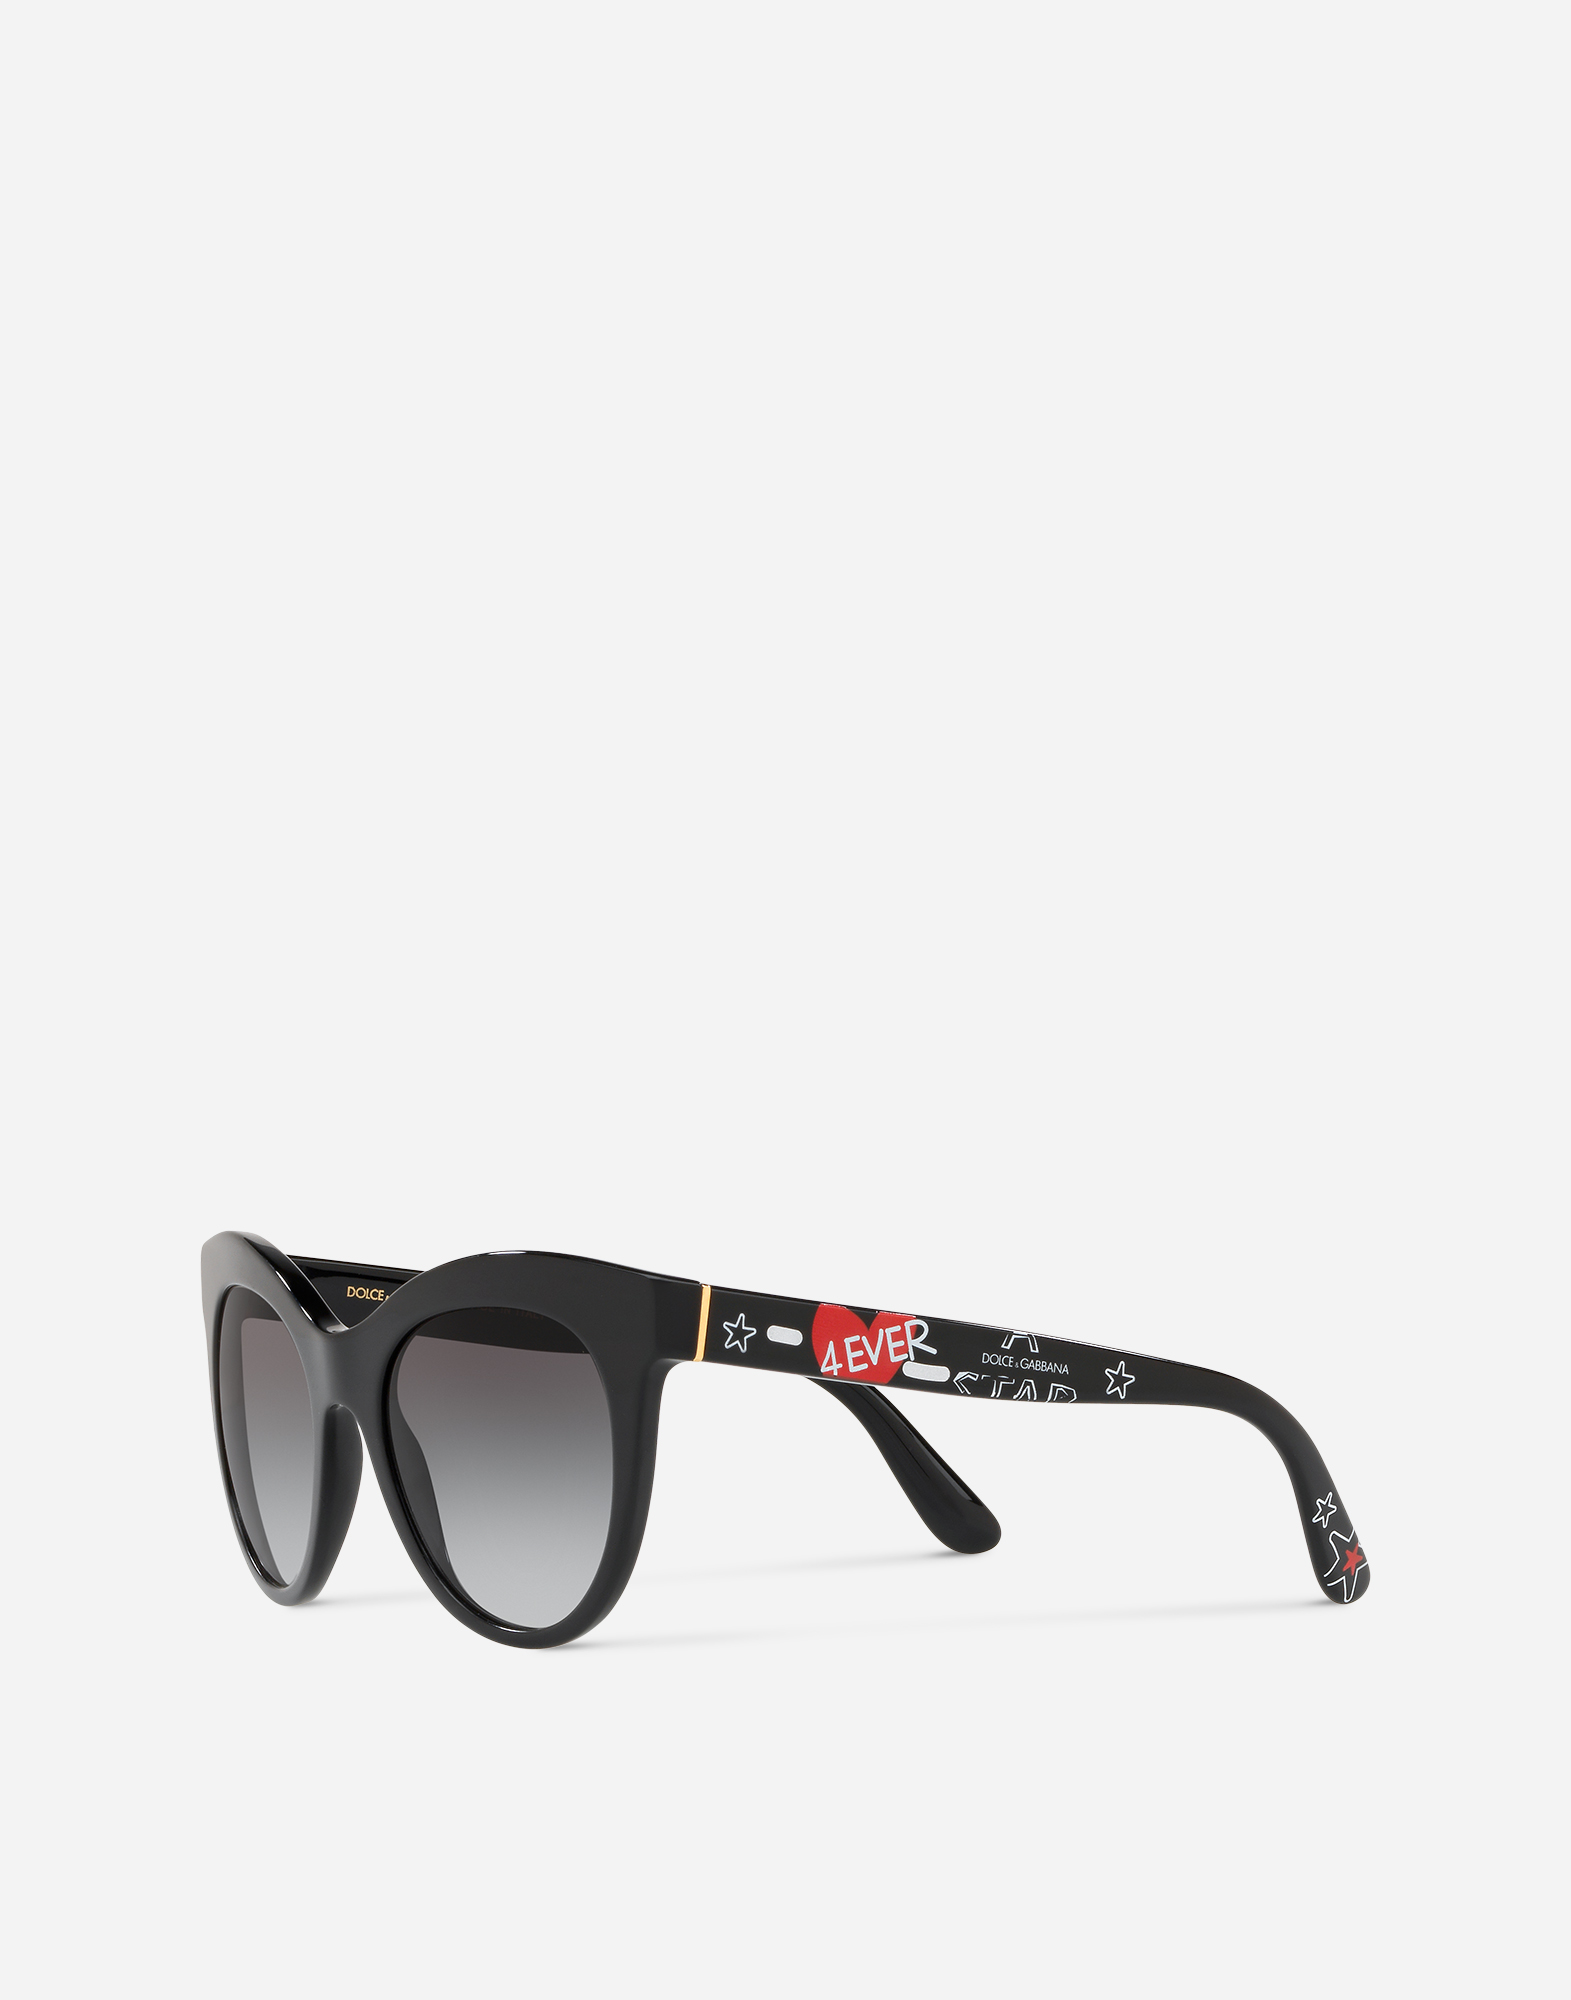 Dolce & Gabbana CAT-EYE SUNGLASSES IN ACETATE WITH GRAFFITI PRINT